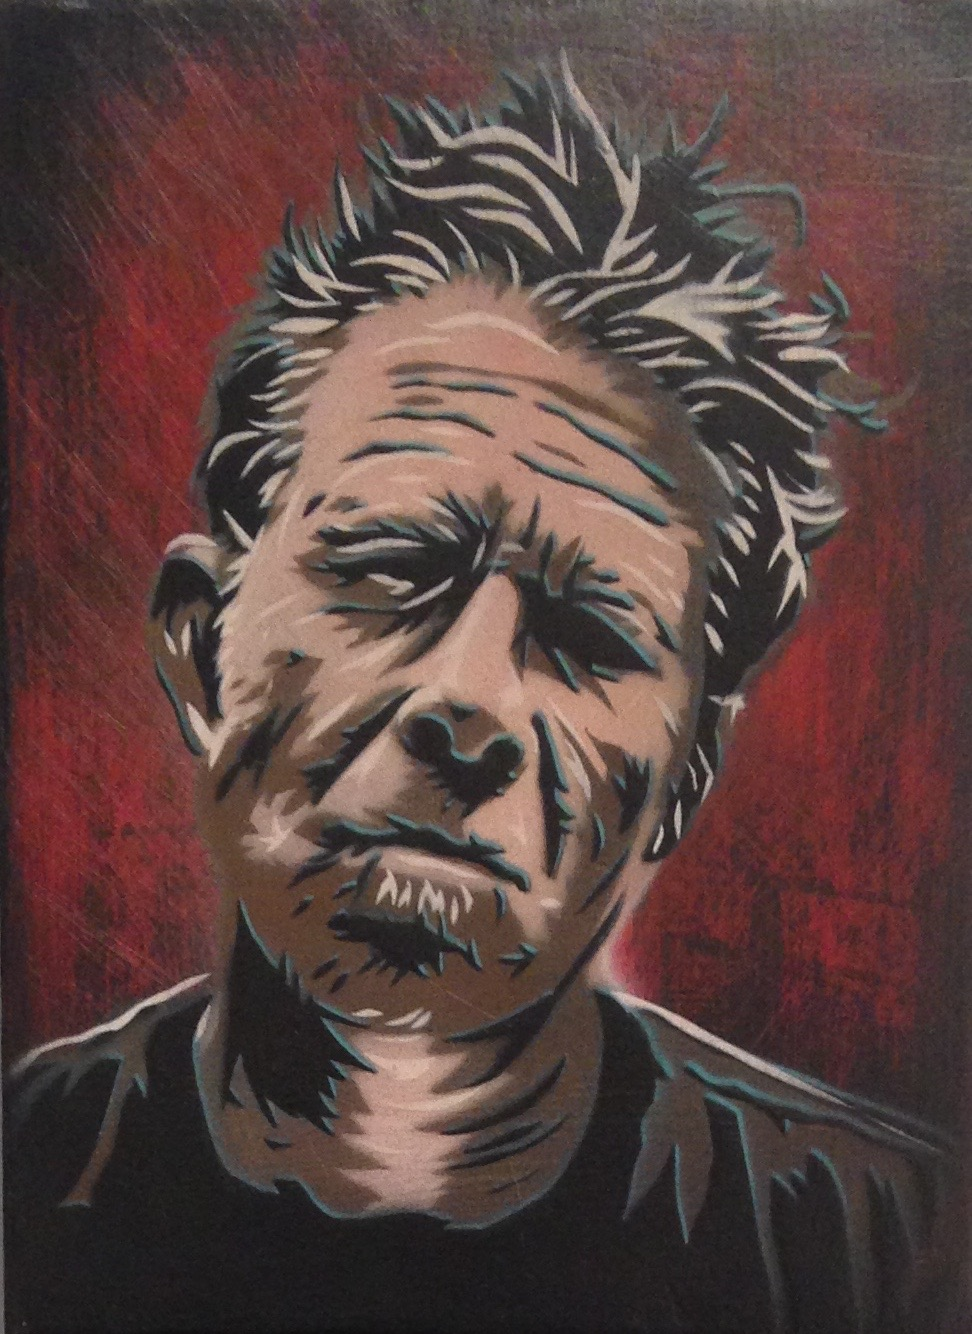 """Tom Waits"" 9""x12"" stencil, aerosol, latex paint on wood panel $250"